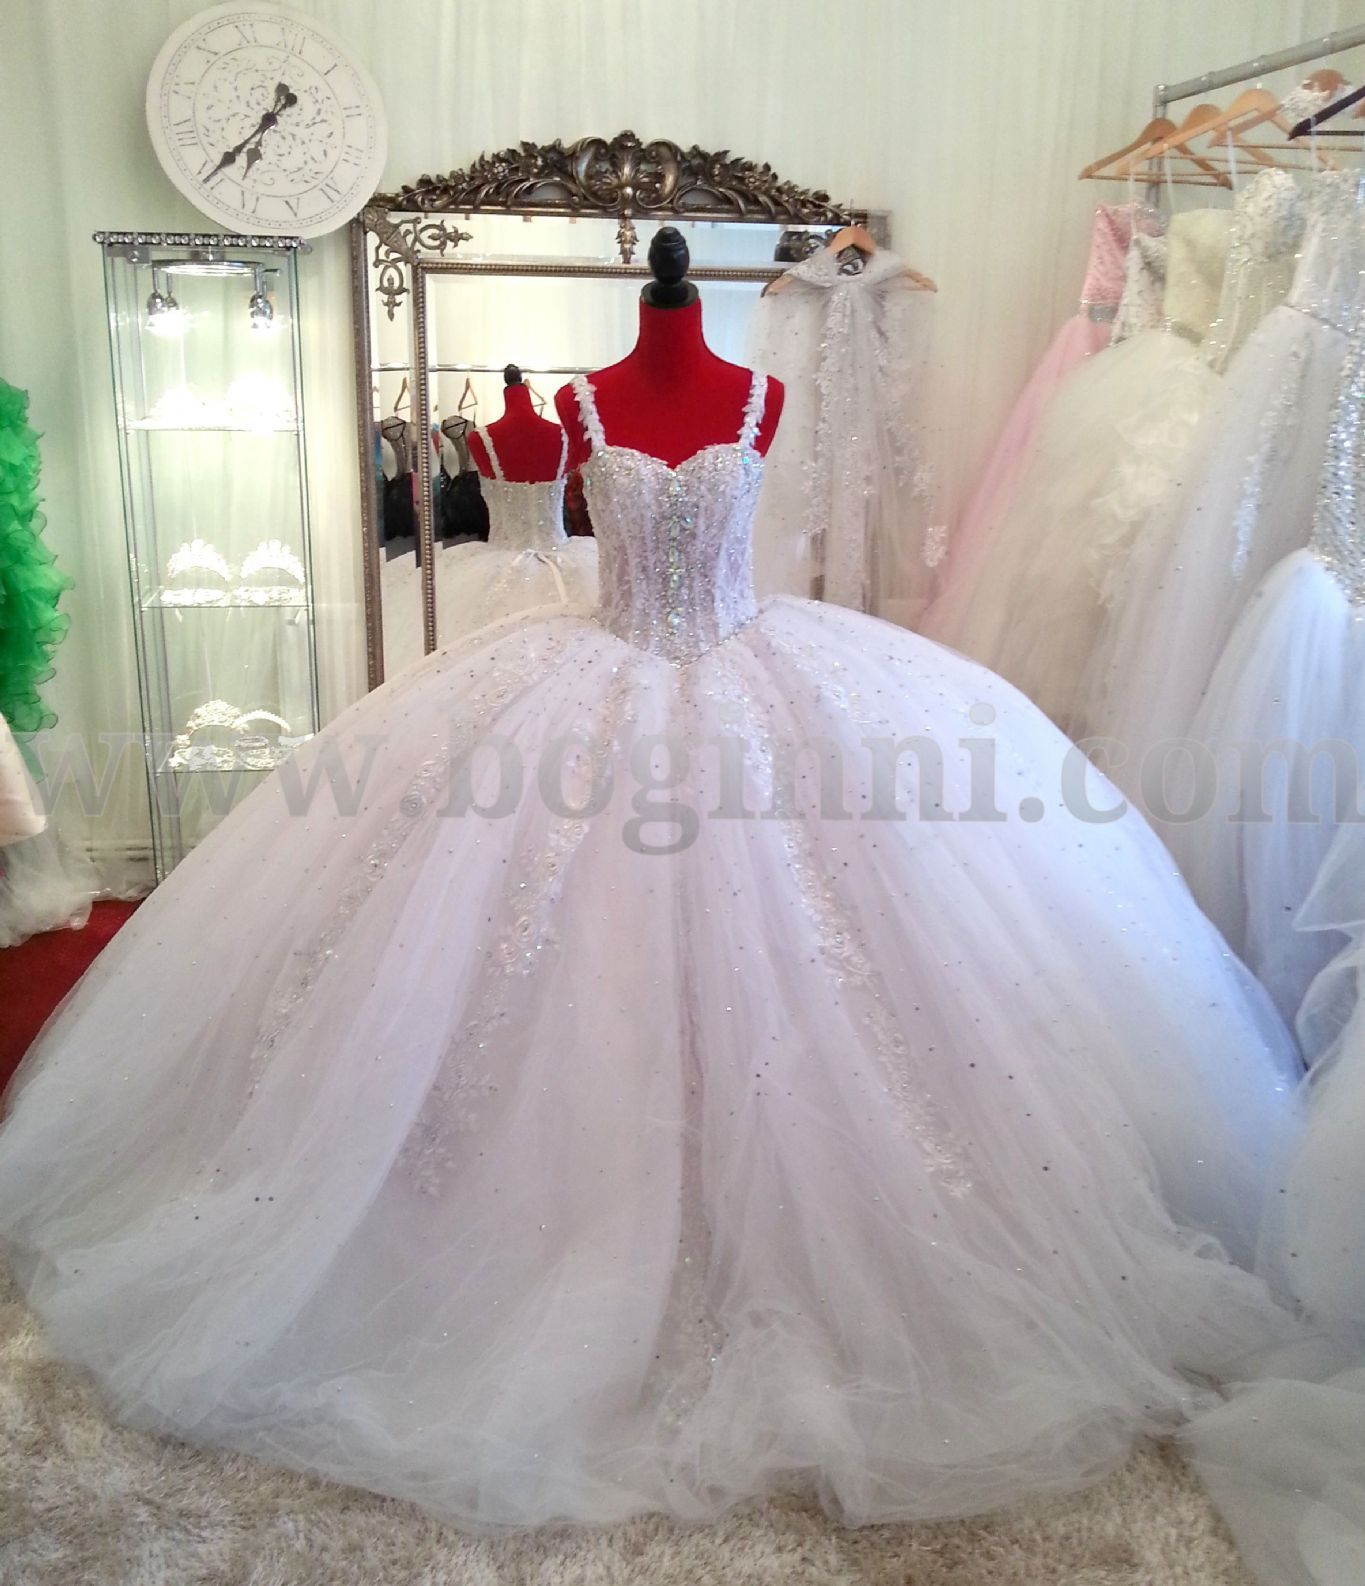 huge wedding dresses all white wedding with wedding couture gallery 5033